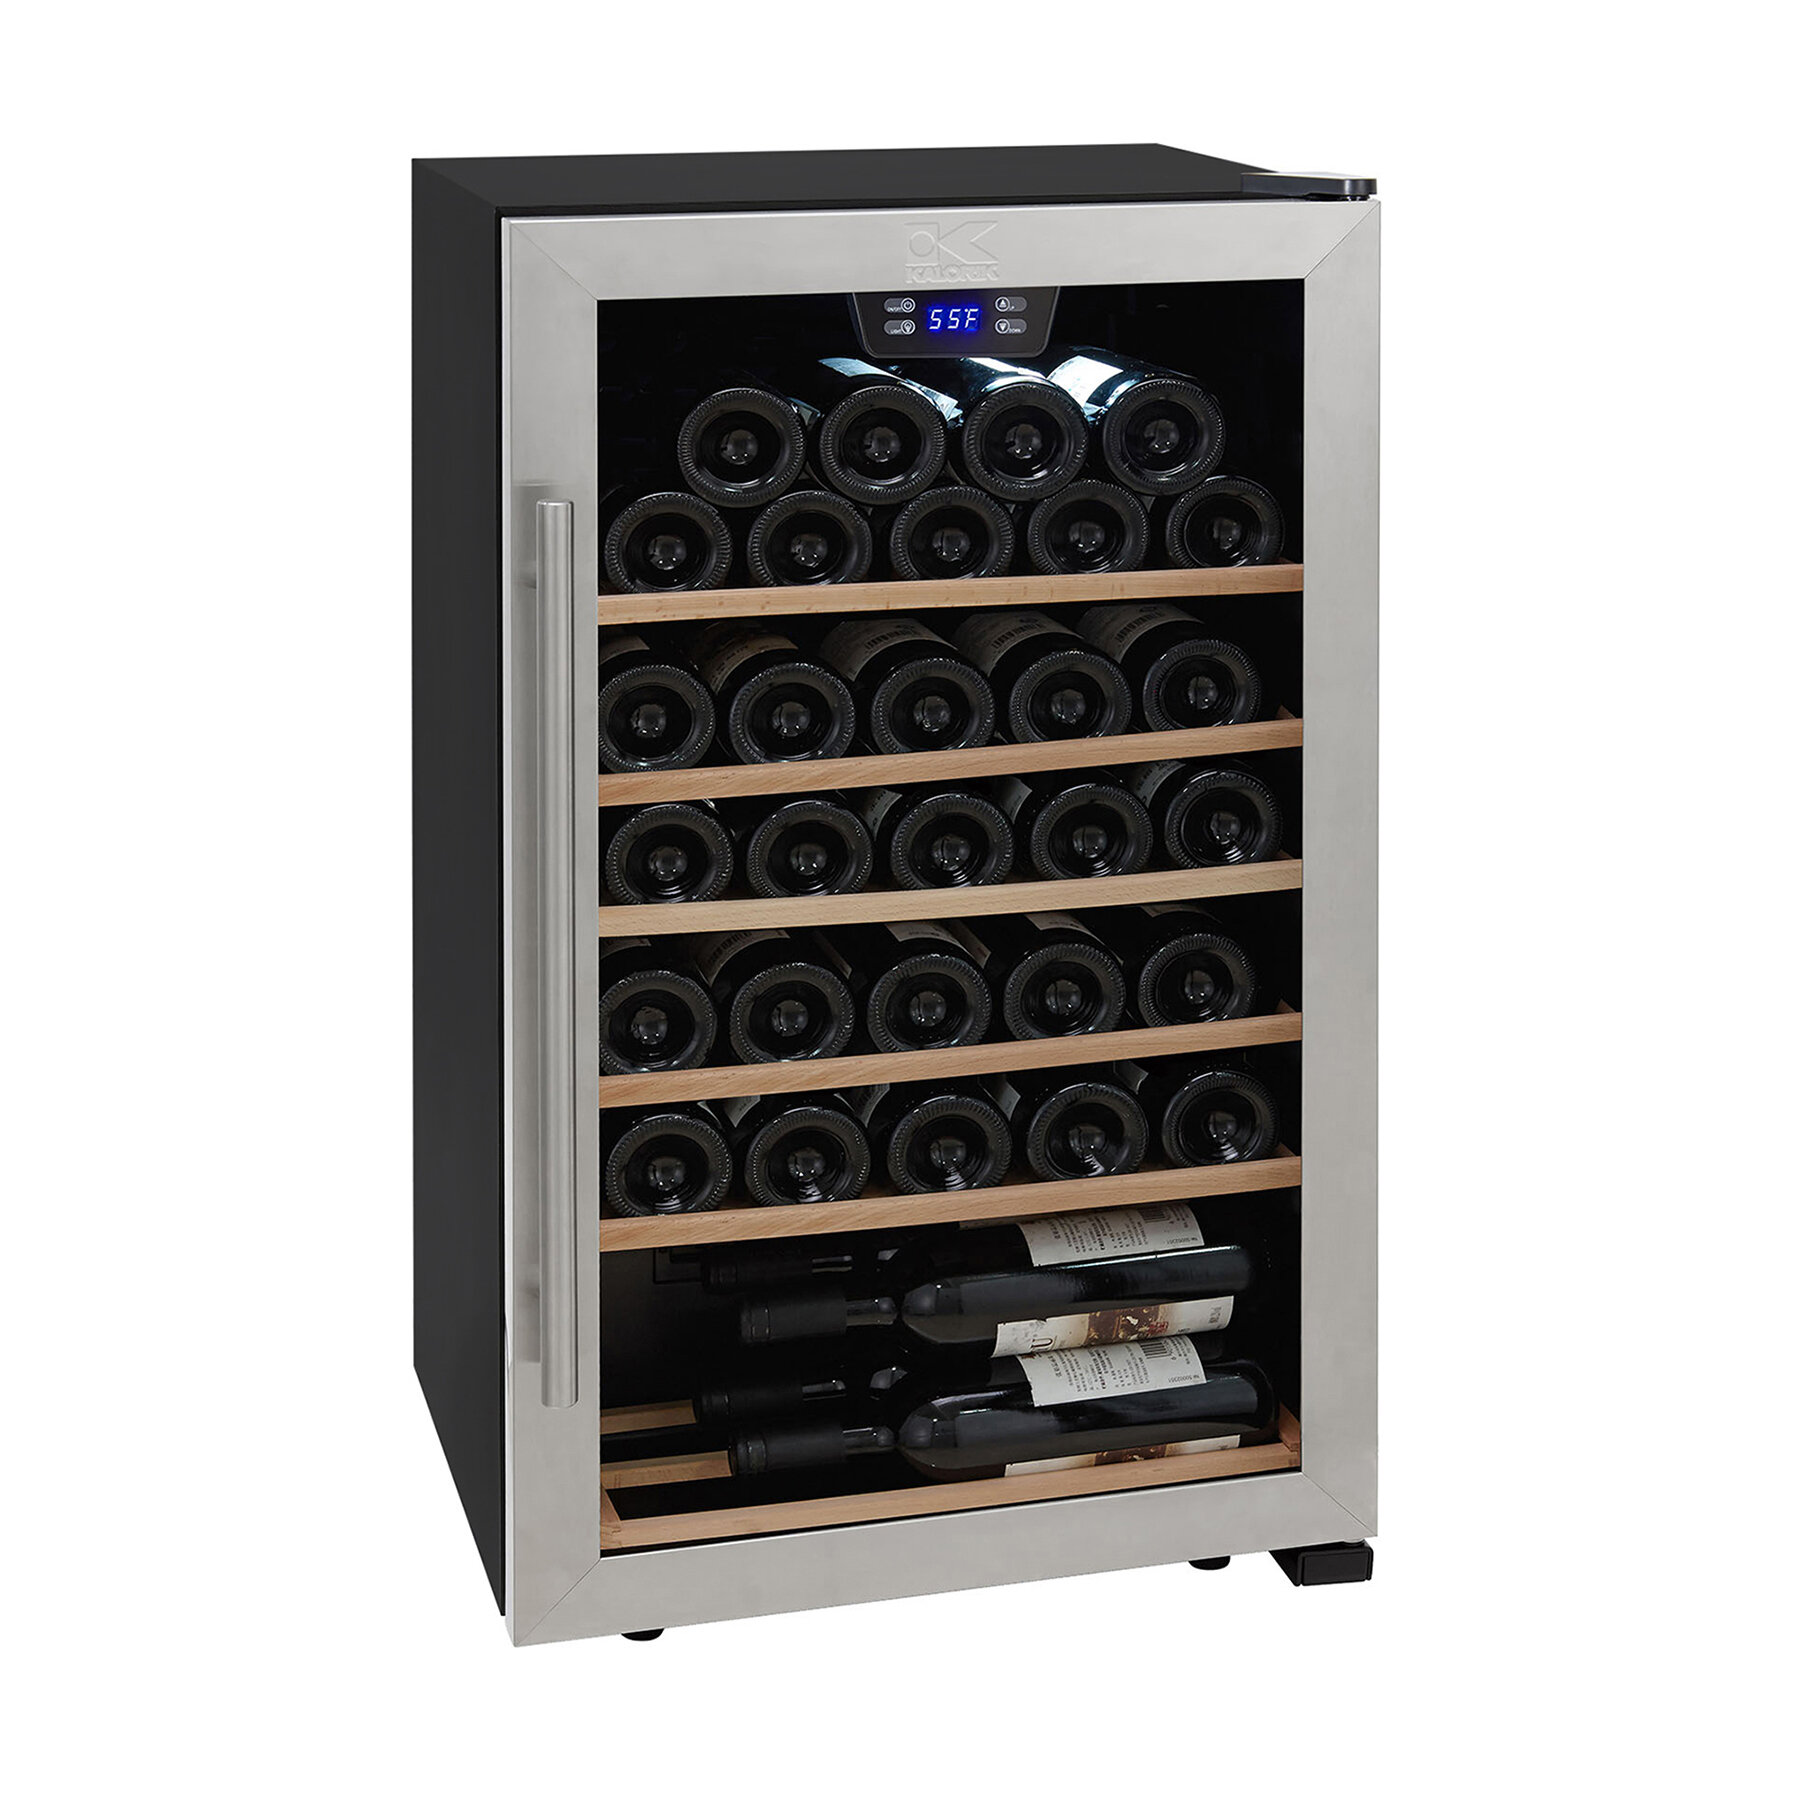 Kalorik 33 Bottle Single Zone Freestanding Wine Refrigerator Reviews Wayfair